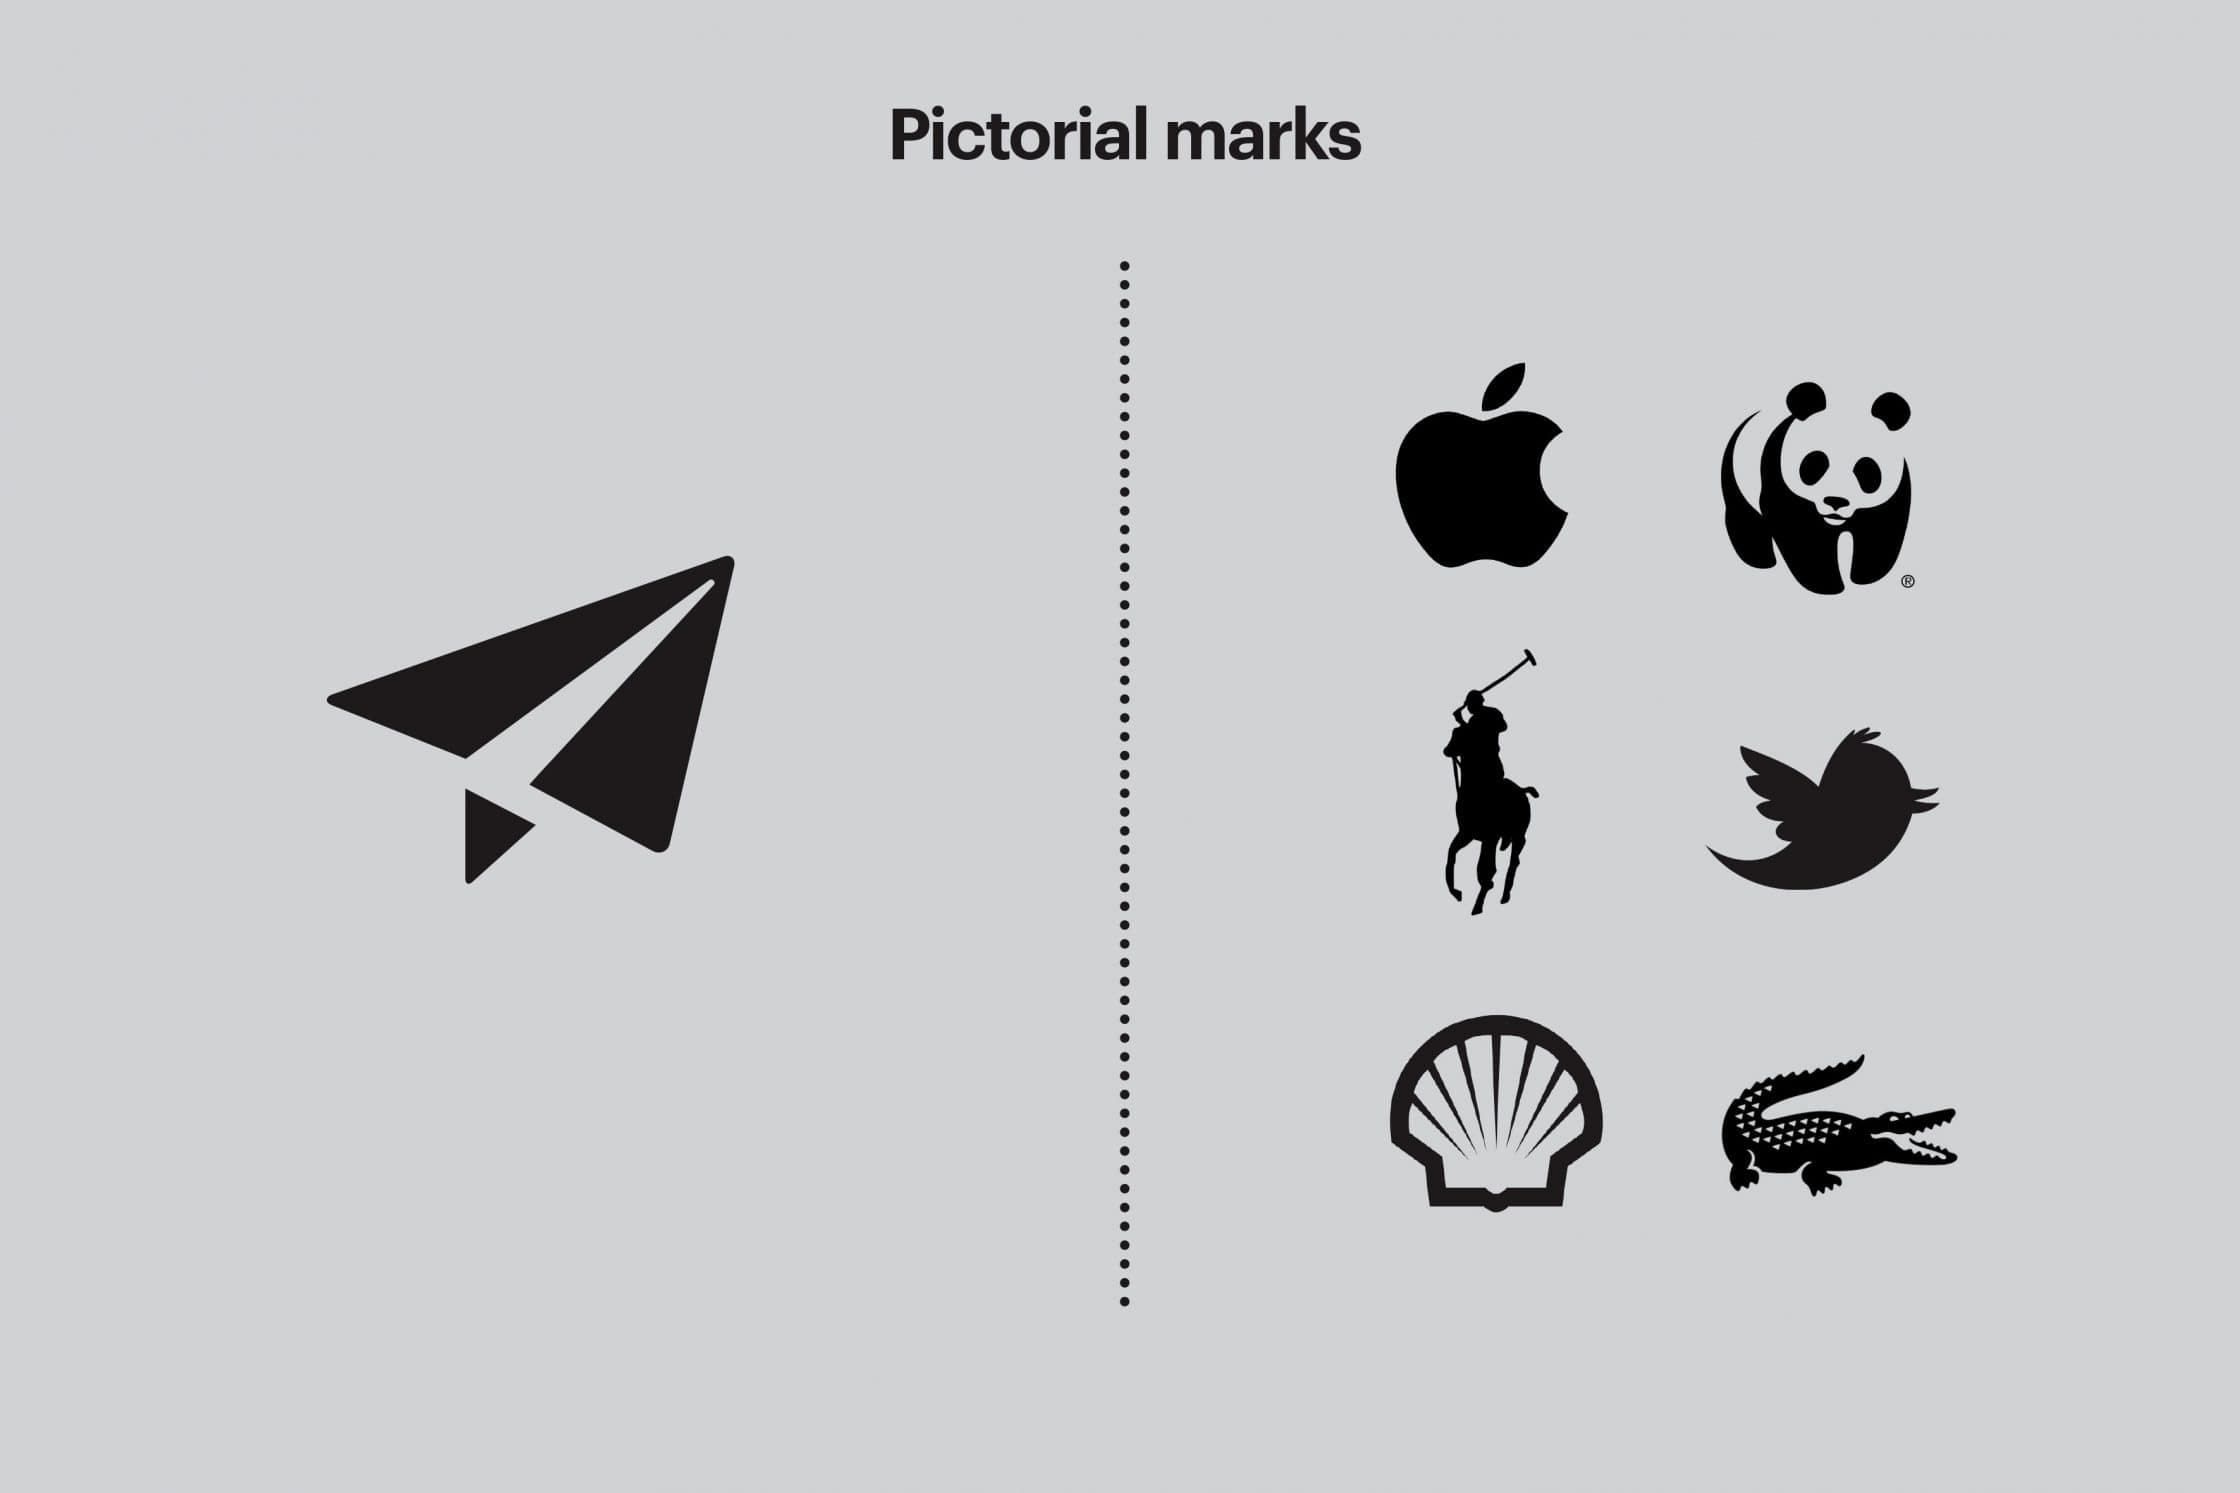 Example of pictorial marks used by Generico and known brands.